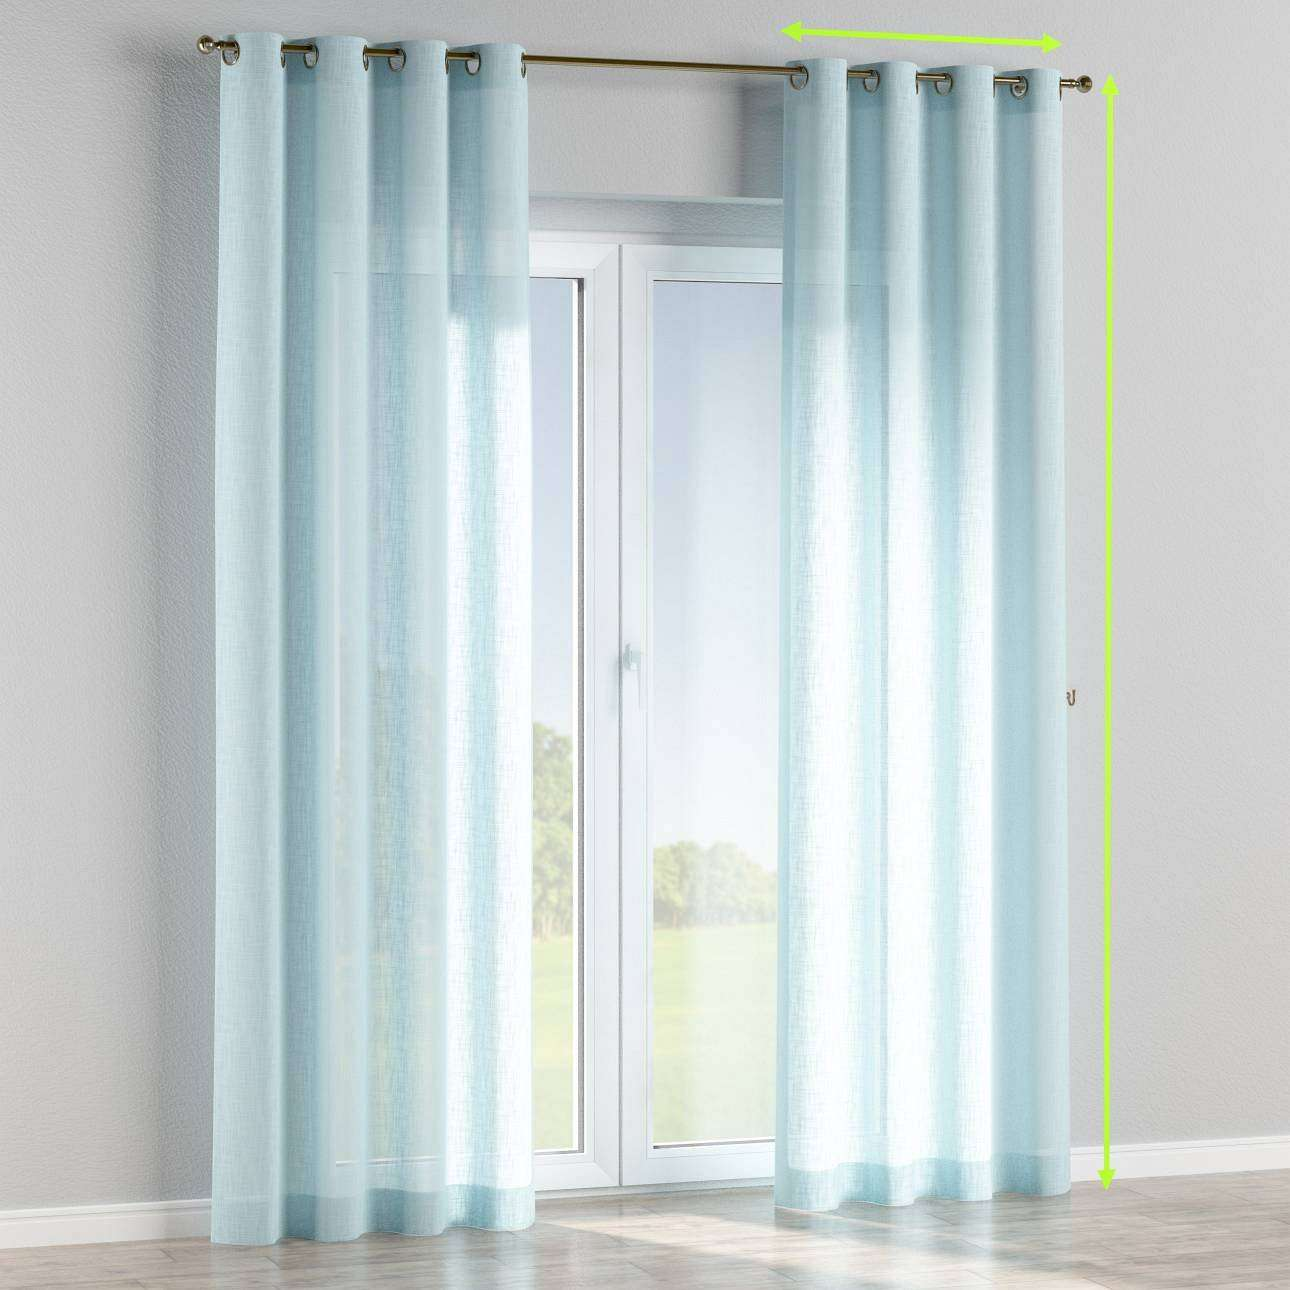 Eyelet curtains in collection Romantica, fabric: 128-06